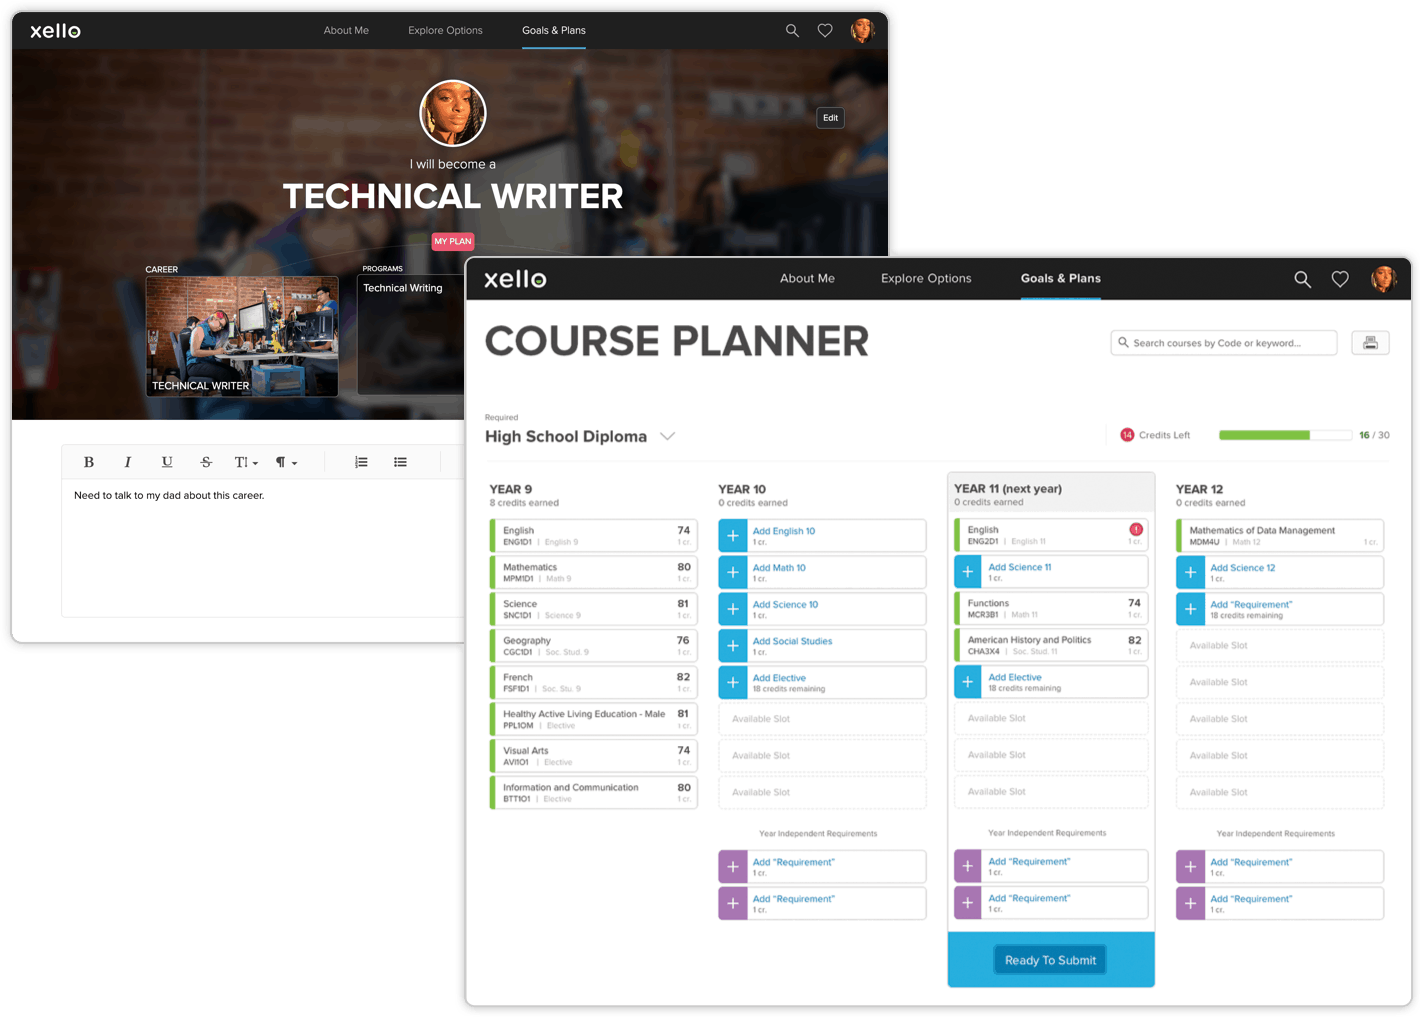 Integrated course planner and interactive plan builder